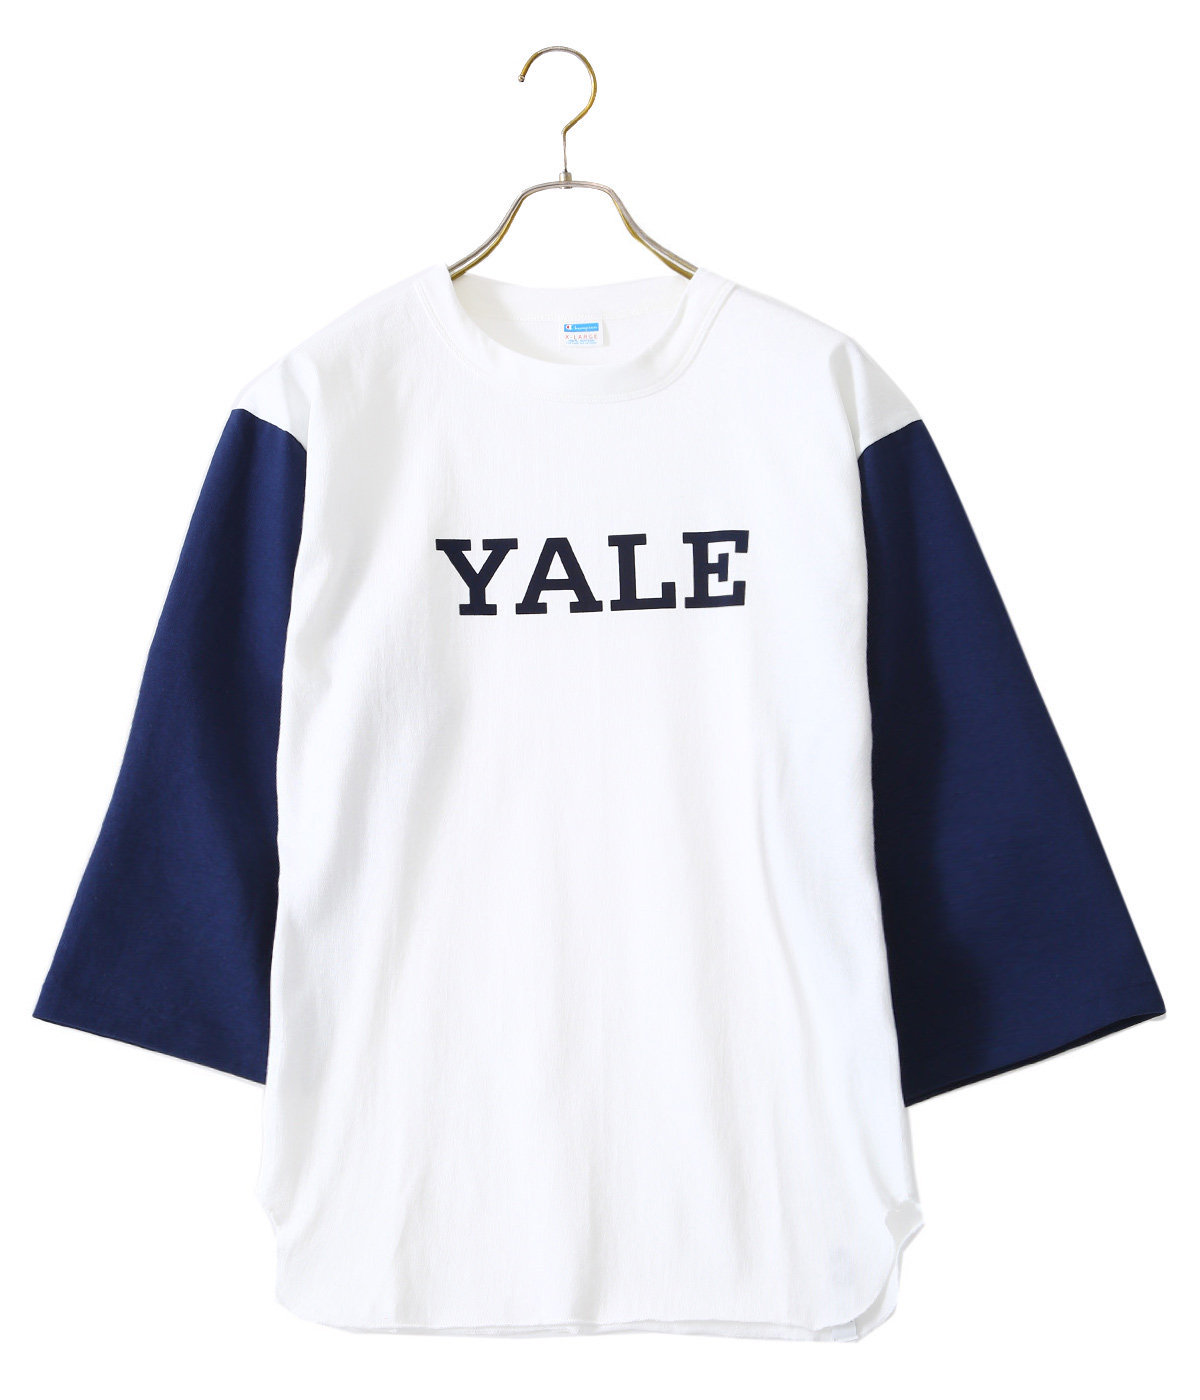 """V44"" 3/4 SLEEVE BASEBALL T-SHIRT"